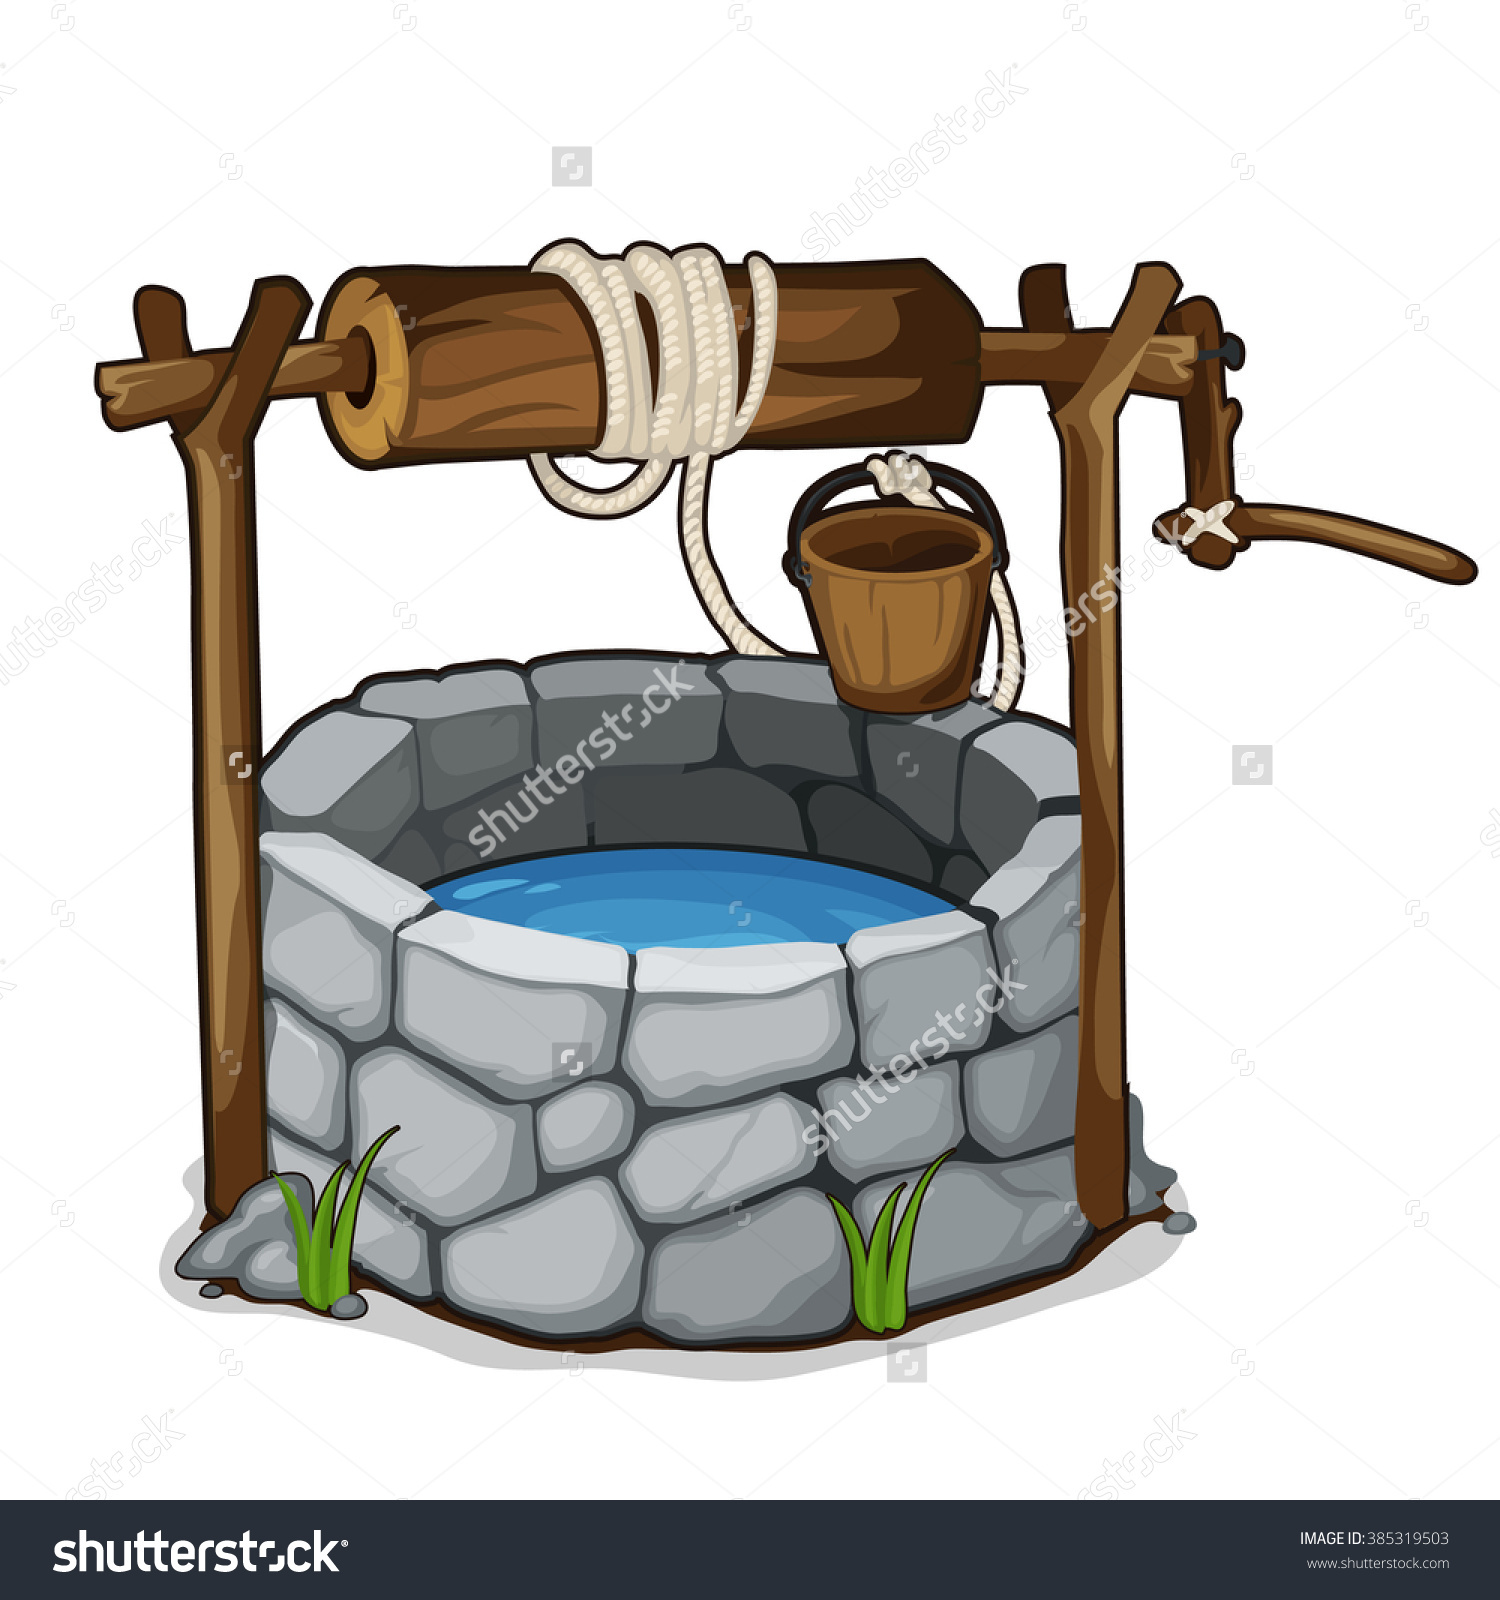 Traditional drinking fountain clipart #5